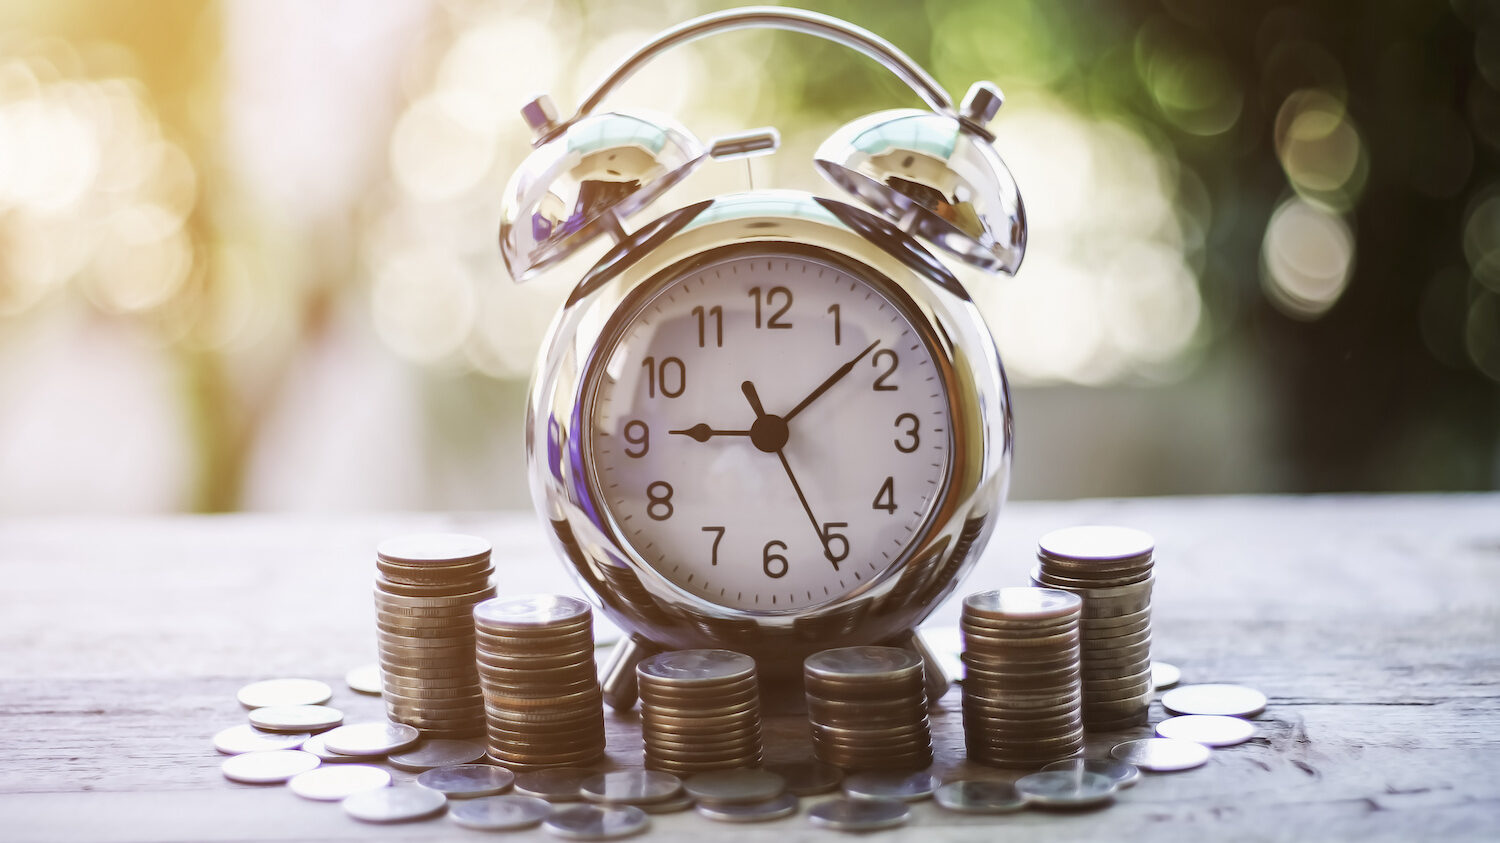 Waiting for the time when your finances are prefect